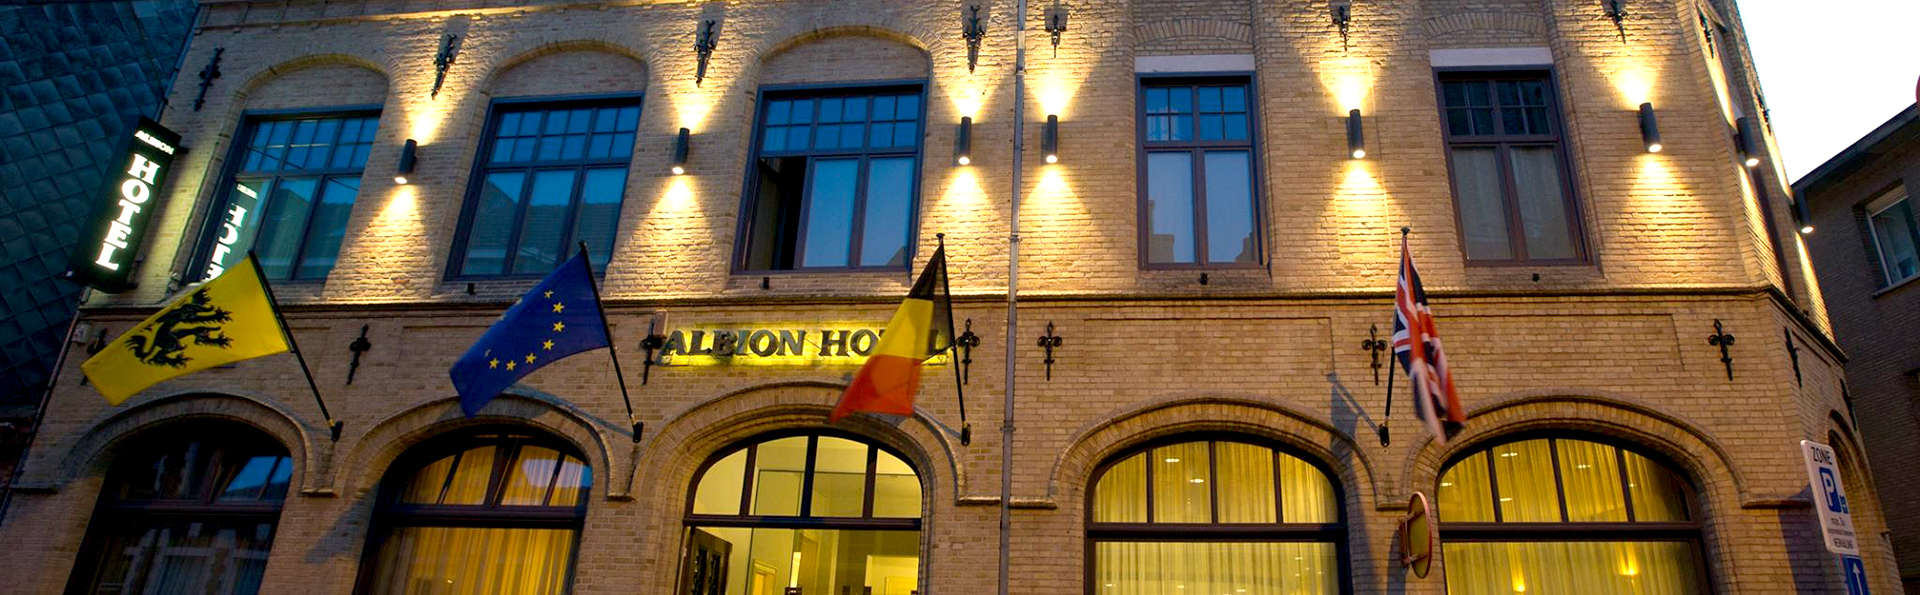 Albion Hotel - Edit_Front.jpg